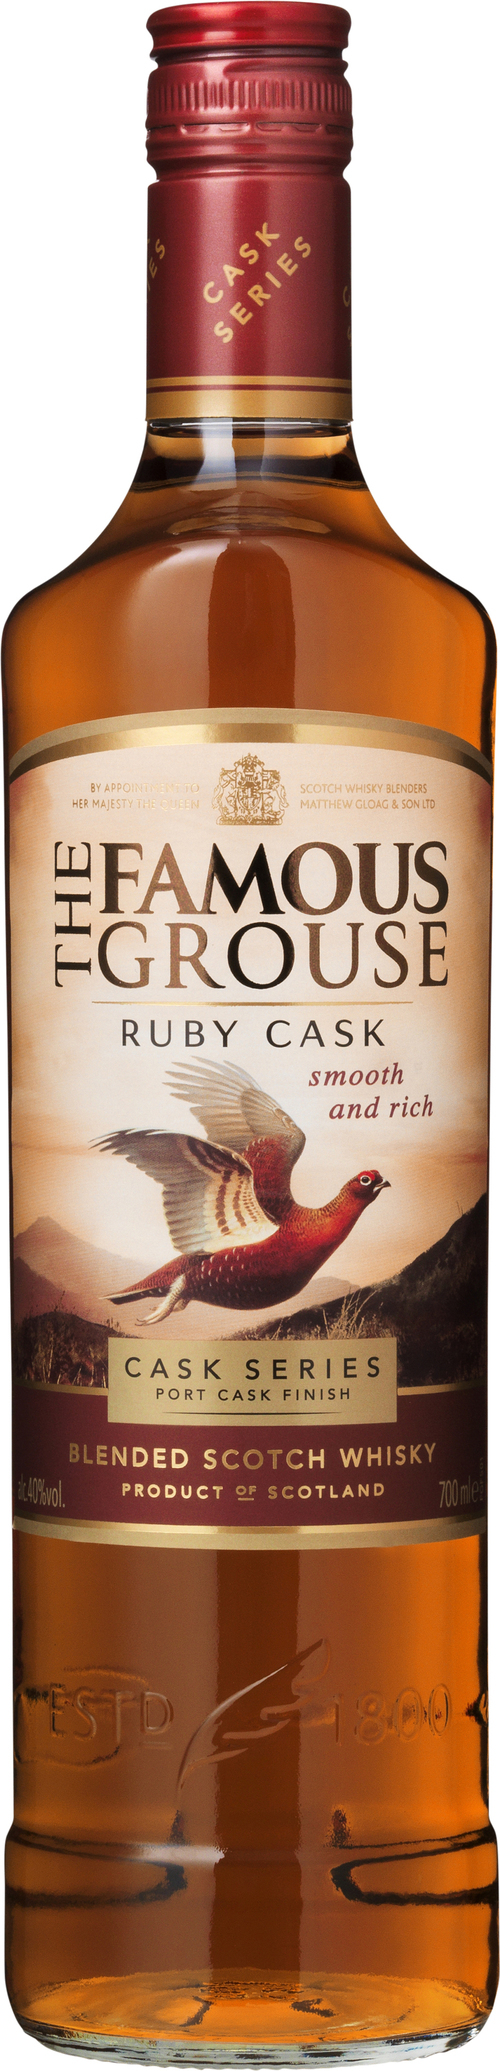 Famous Grouse whisky Ruby Cask 0,7 l